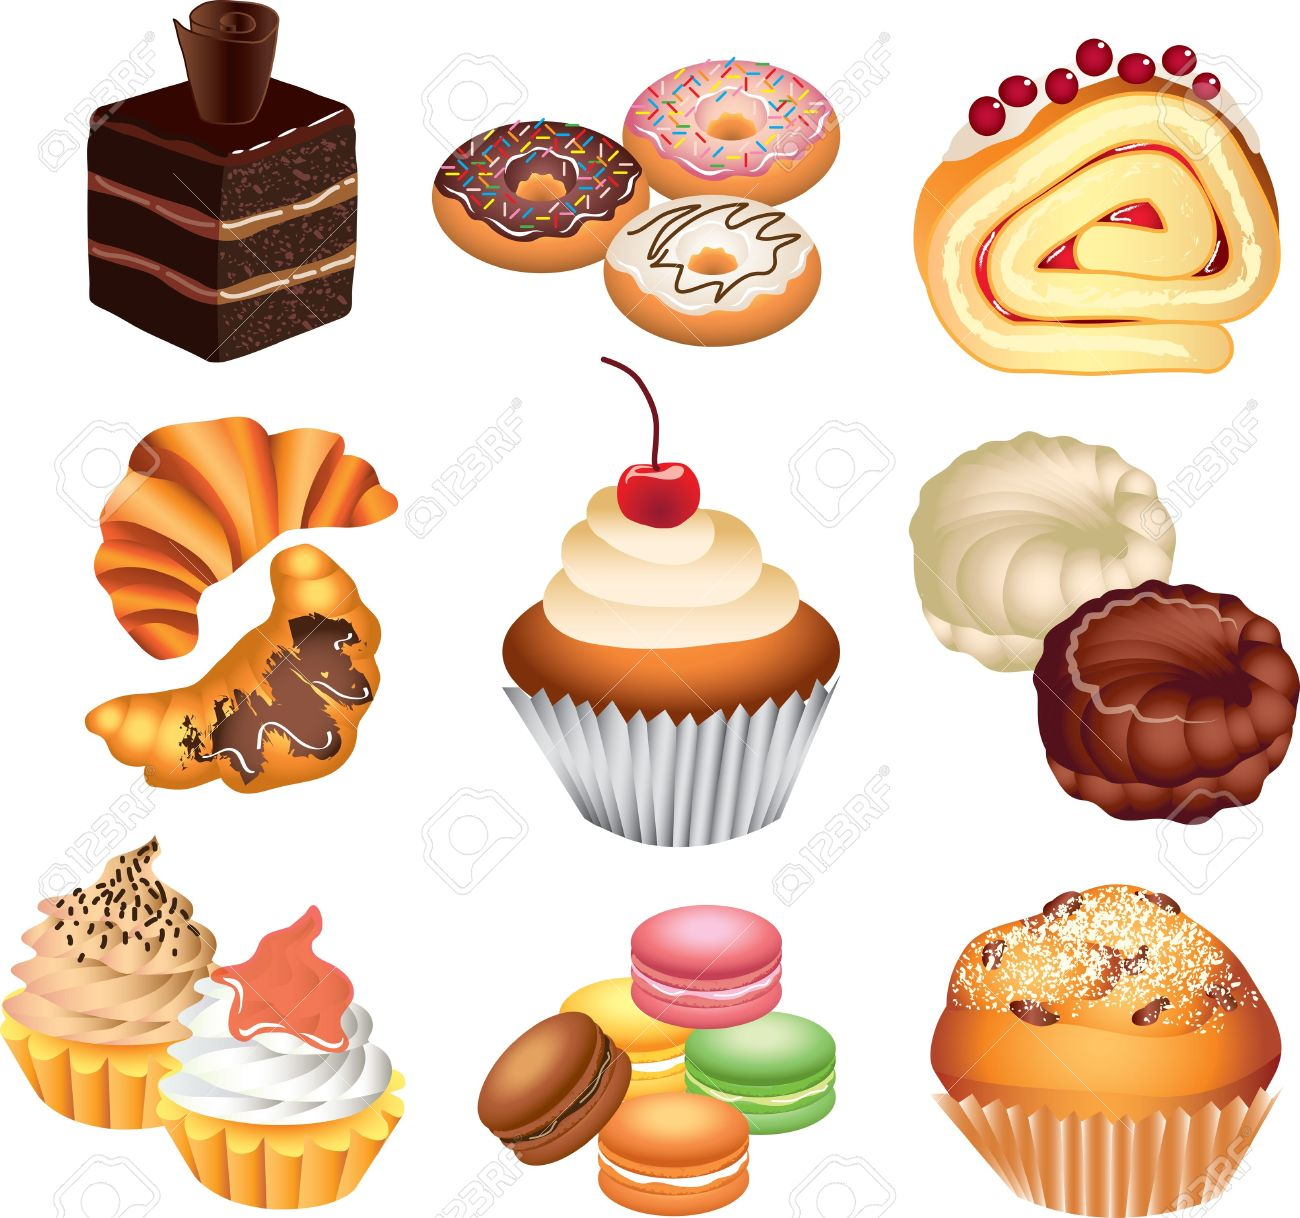 Pastries and cakes clipart.